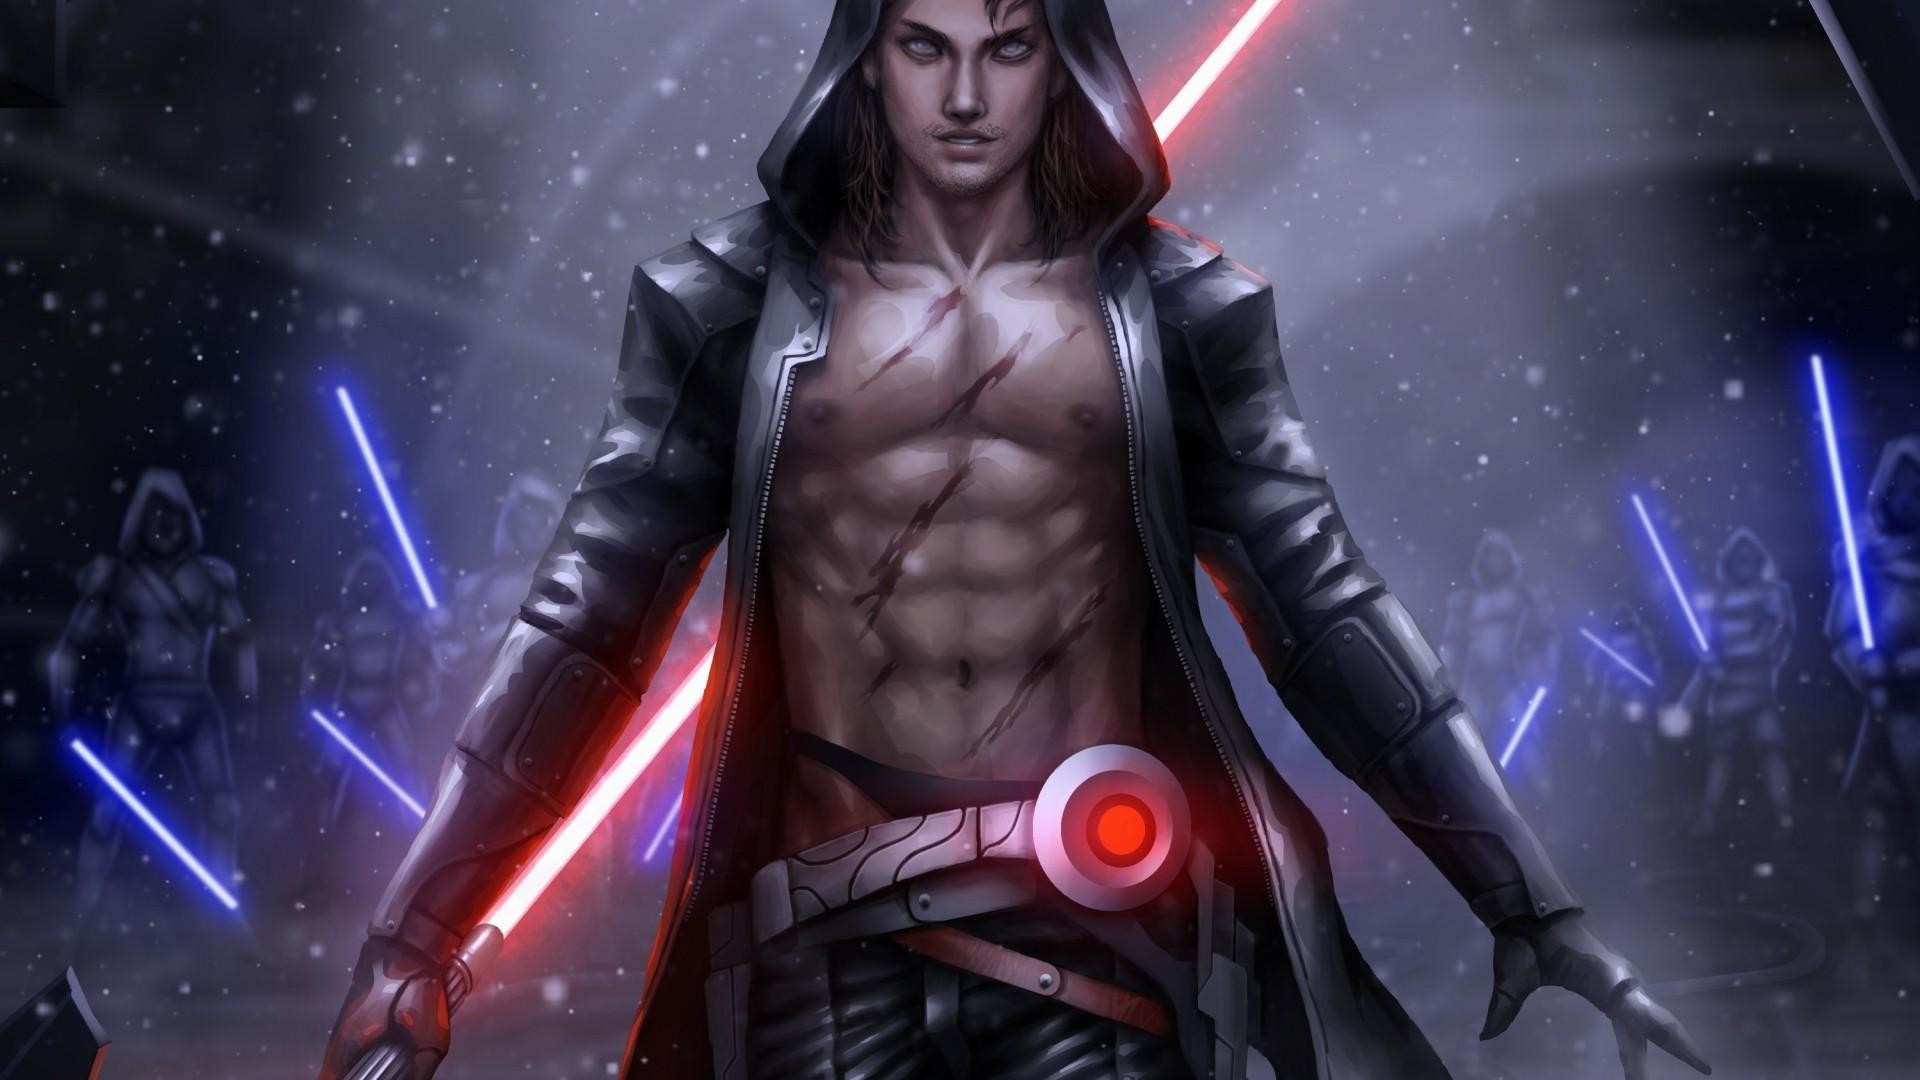 Star Wars Force Unleashed Wallpaper Posted By Samantha Sellers